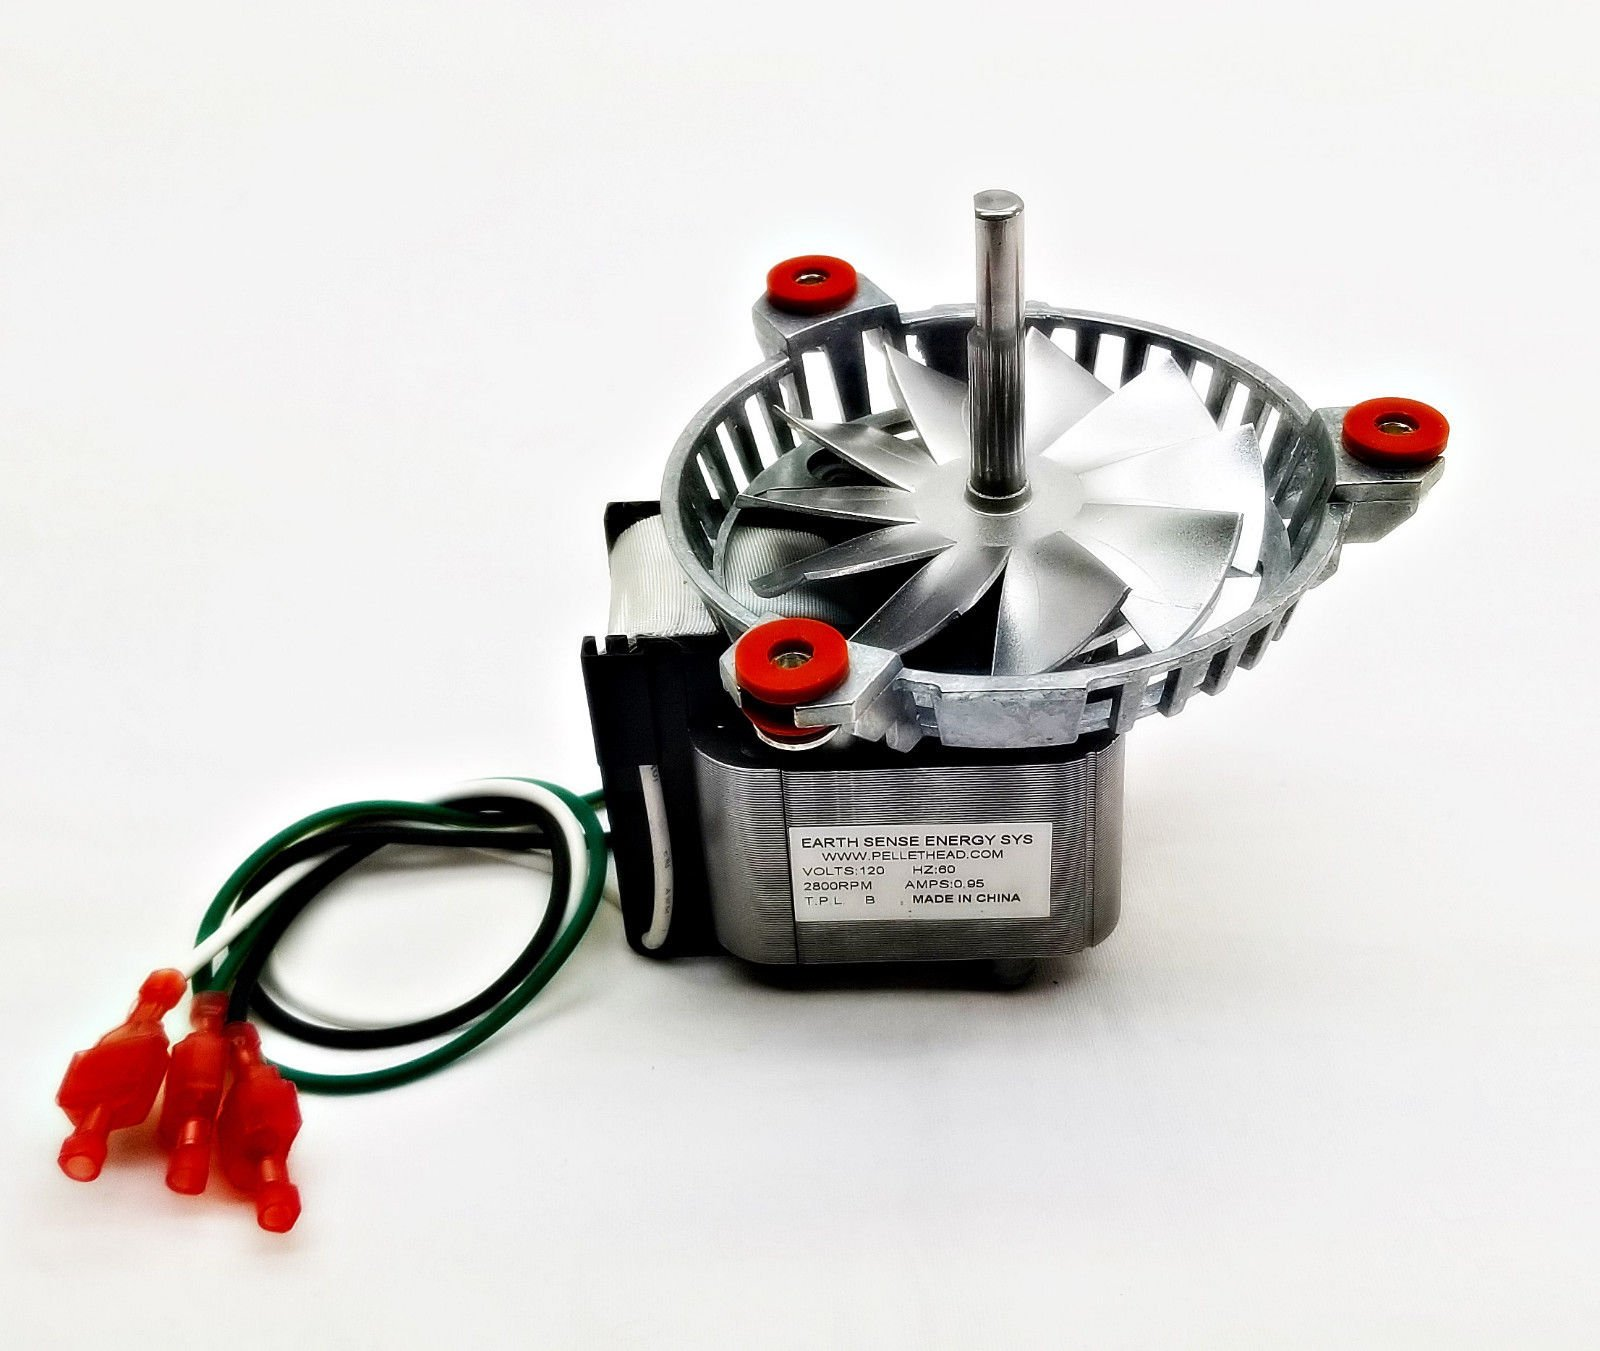 Englander Blower Room Fan Motor 25-EP, 25-EPI, 25-PDVC - PU-4c442, PH-UNIVCOMB + FREE E-BOOK (FREEZING)